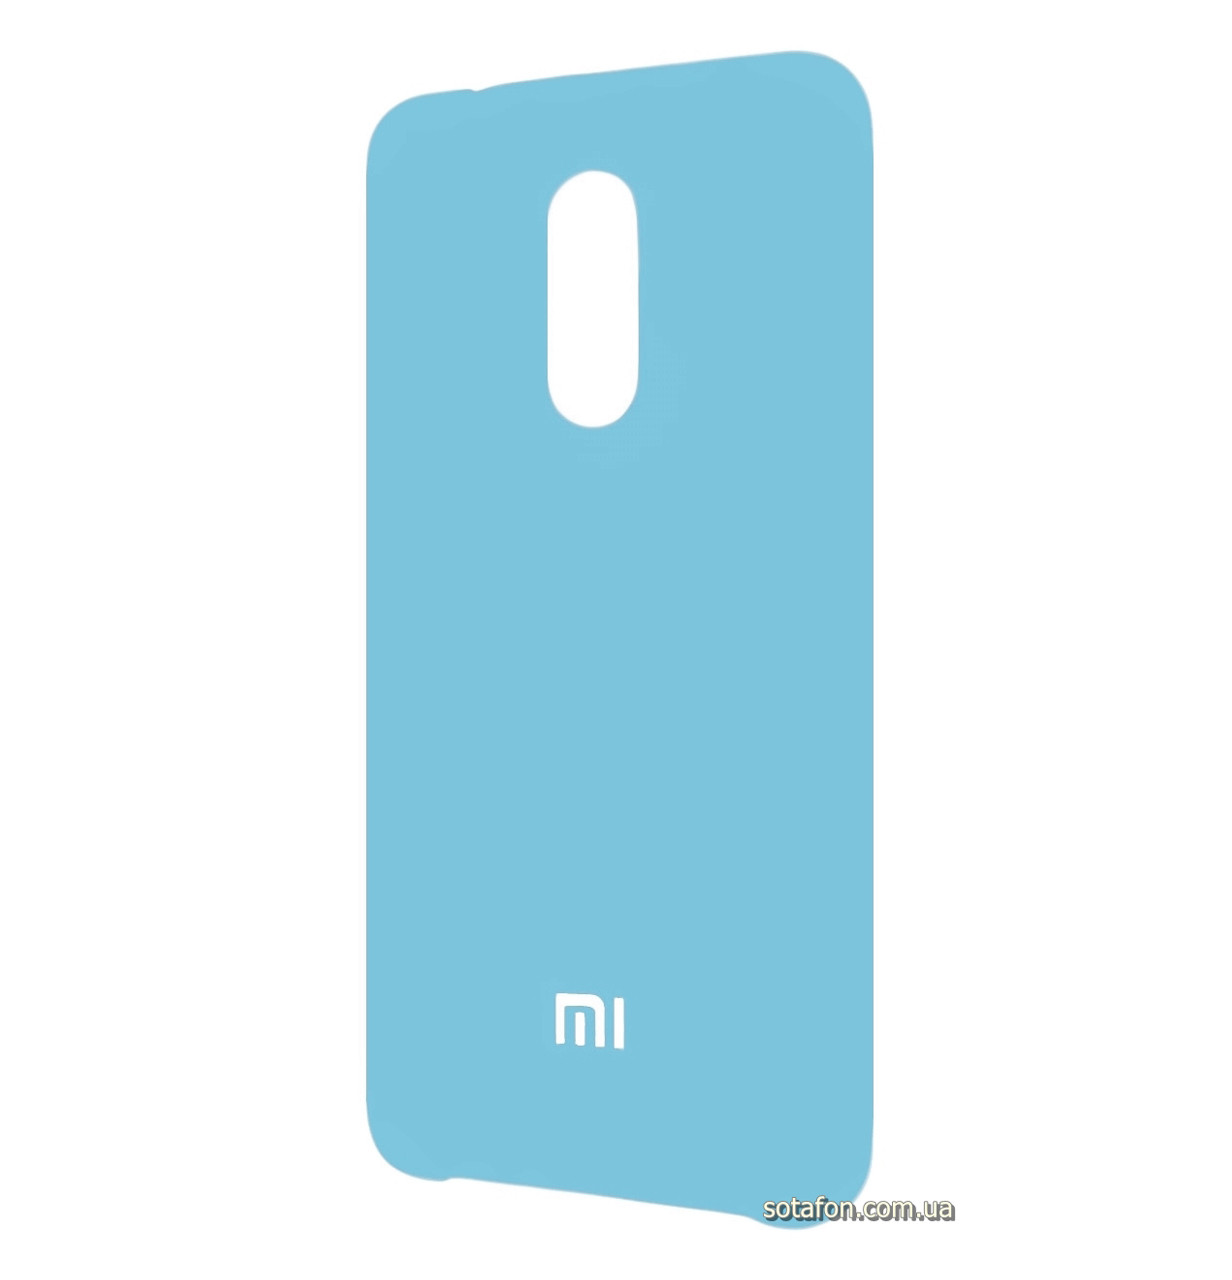 Чехол-накладка Original Silicone case на Xiaomi Redmi 5 Light Blue